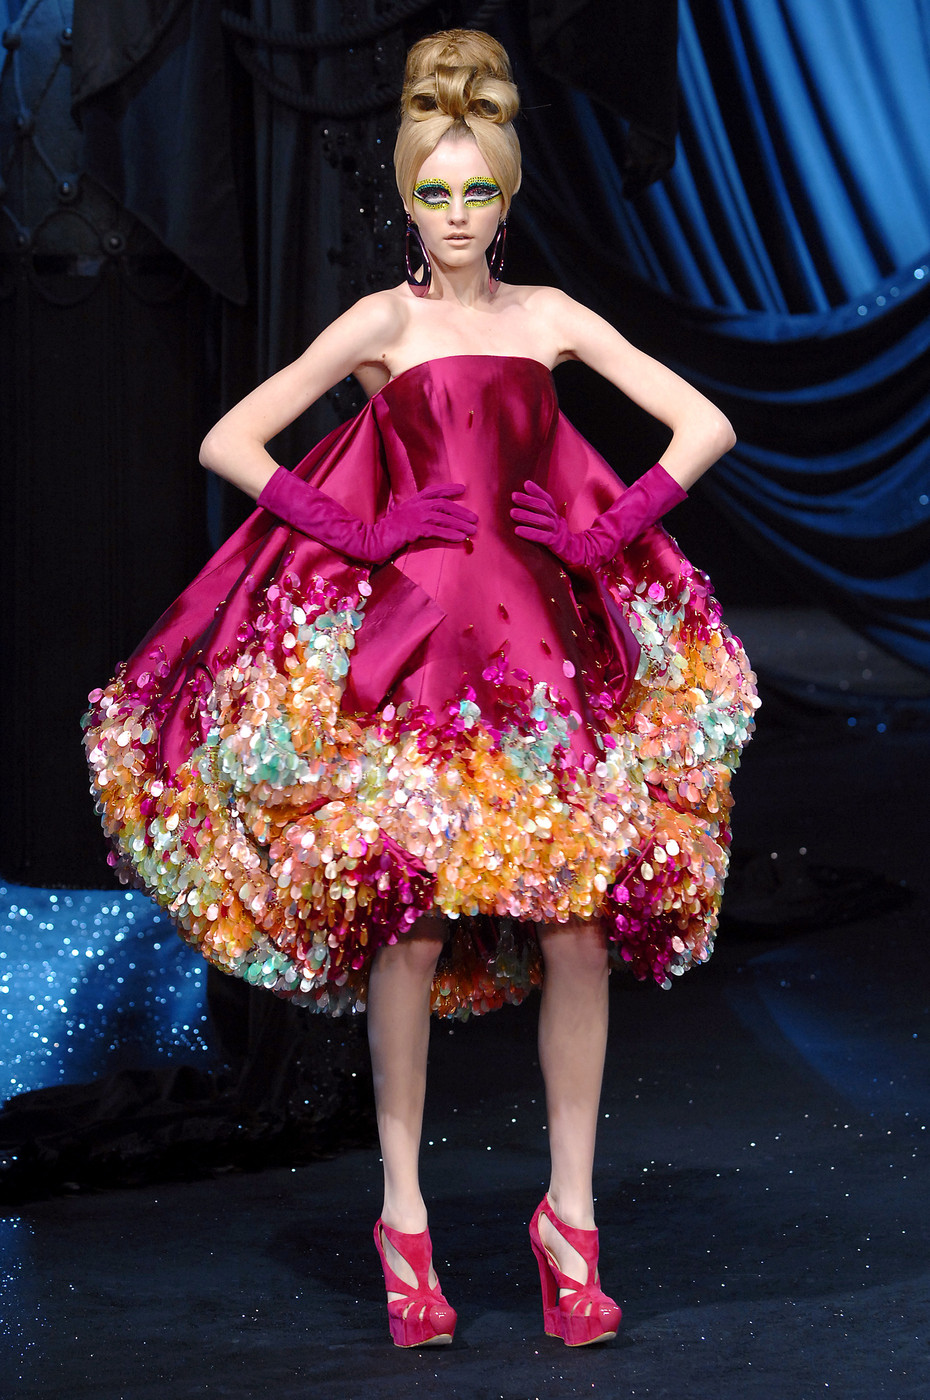 Christian Dior Haute Couture Spring/Summer 2008 (John Galliano = JG)